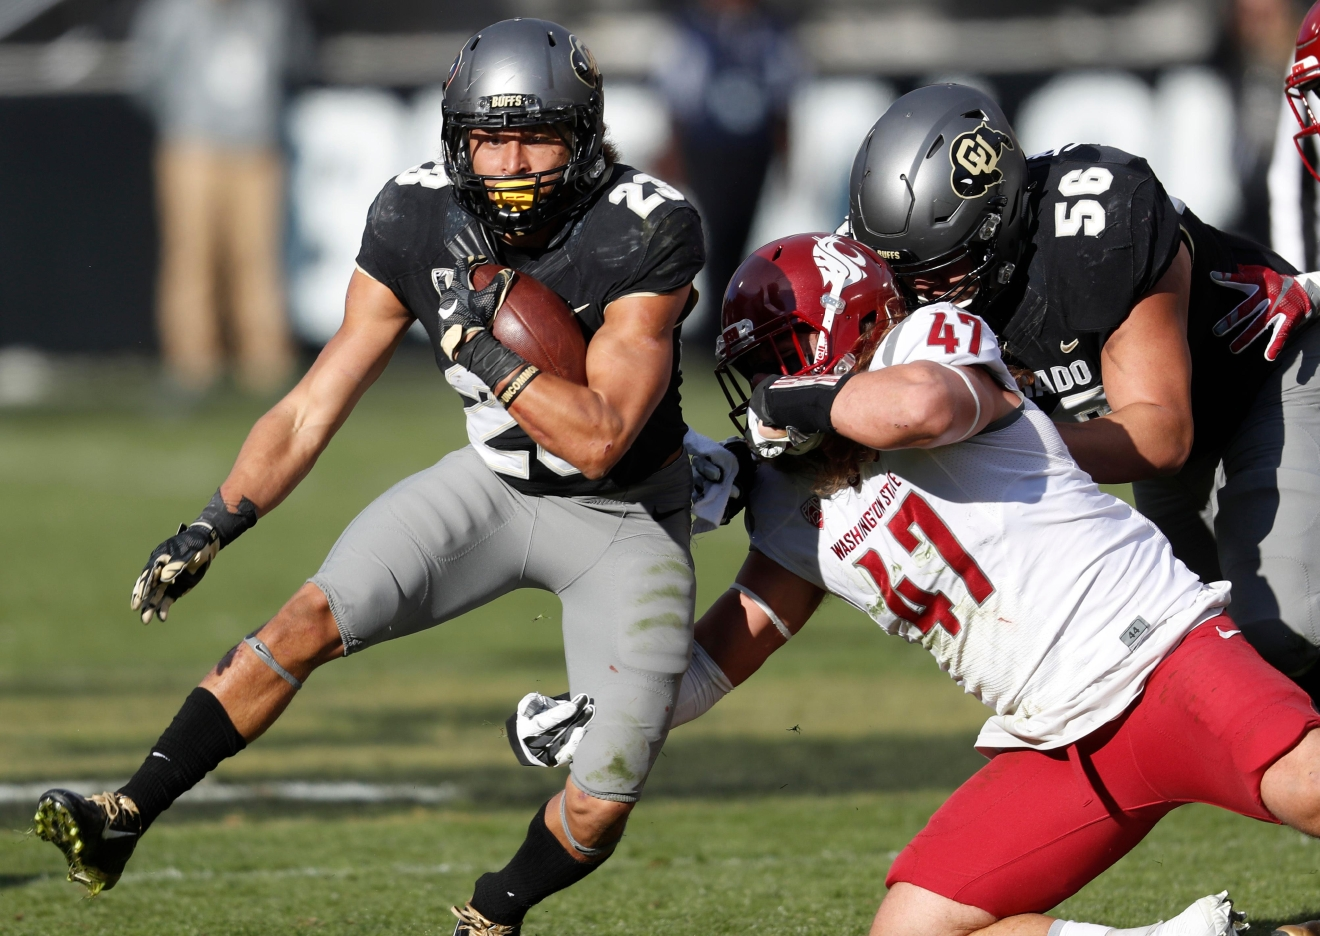 Colorado running back Phillip Lindsay, left, is pulled down by Washington State linebacker Peyton Pelluer in the first half of an NCAA college football game, Saturday, Nov. 19, 2016, in Boulder, Colo. (AP Photo/David Zalubowski)